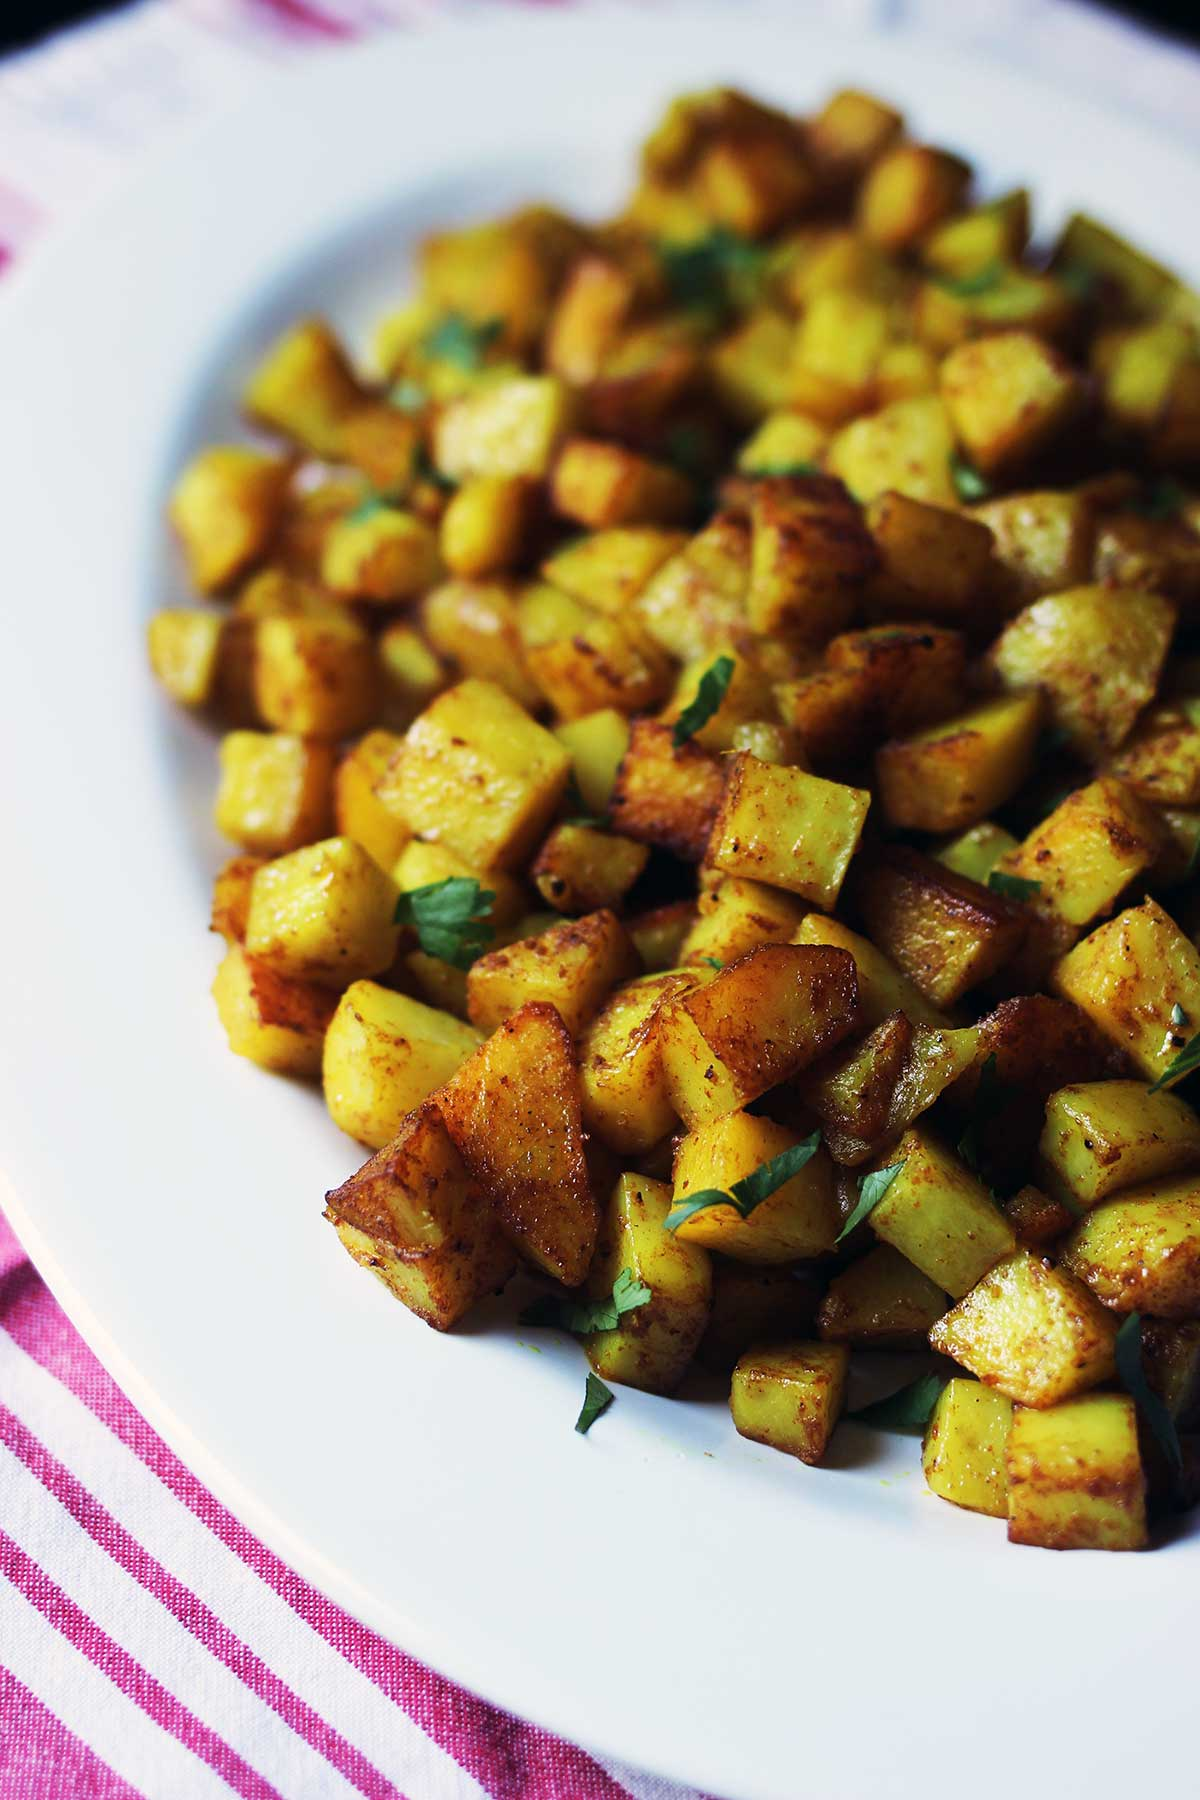 close up of curried potatoes in dish